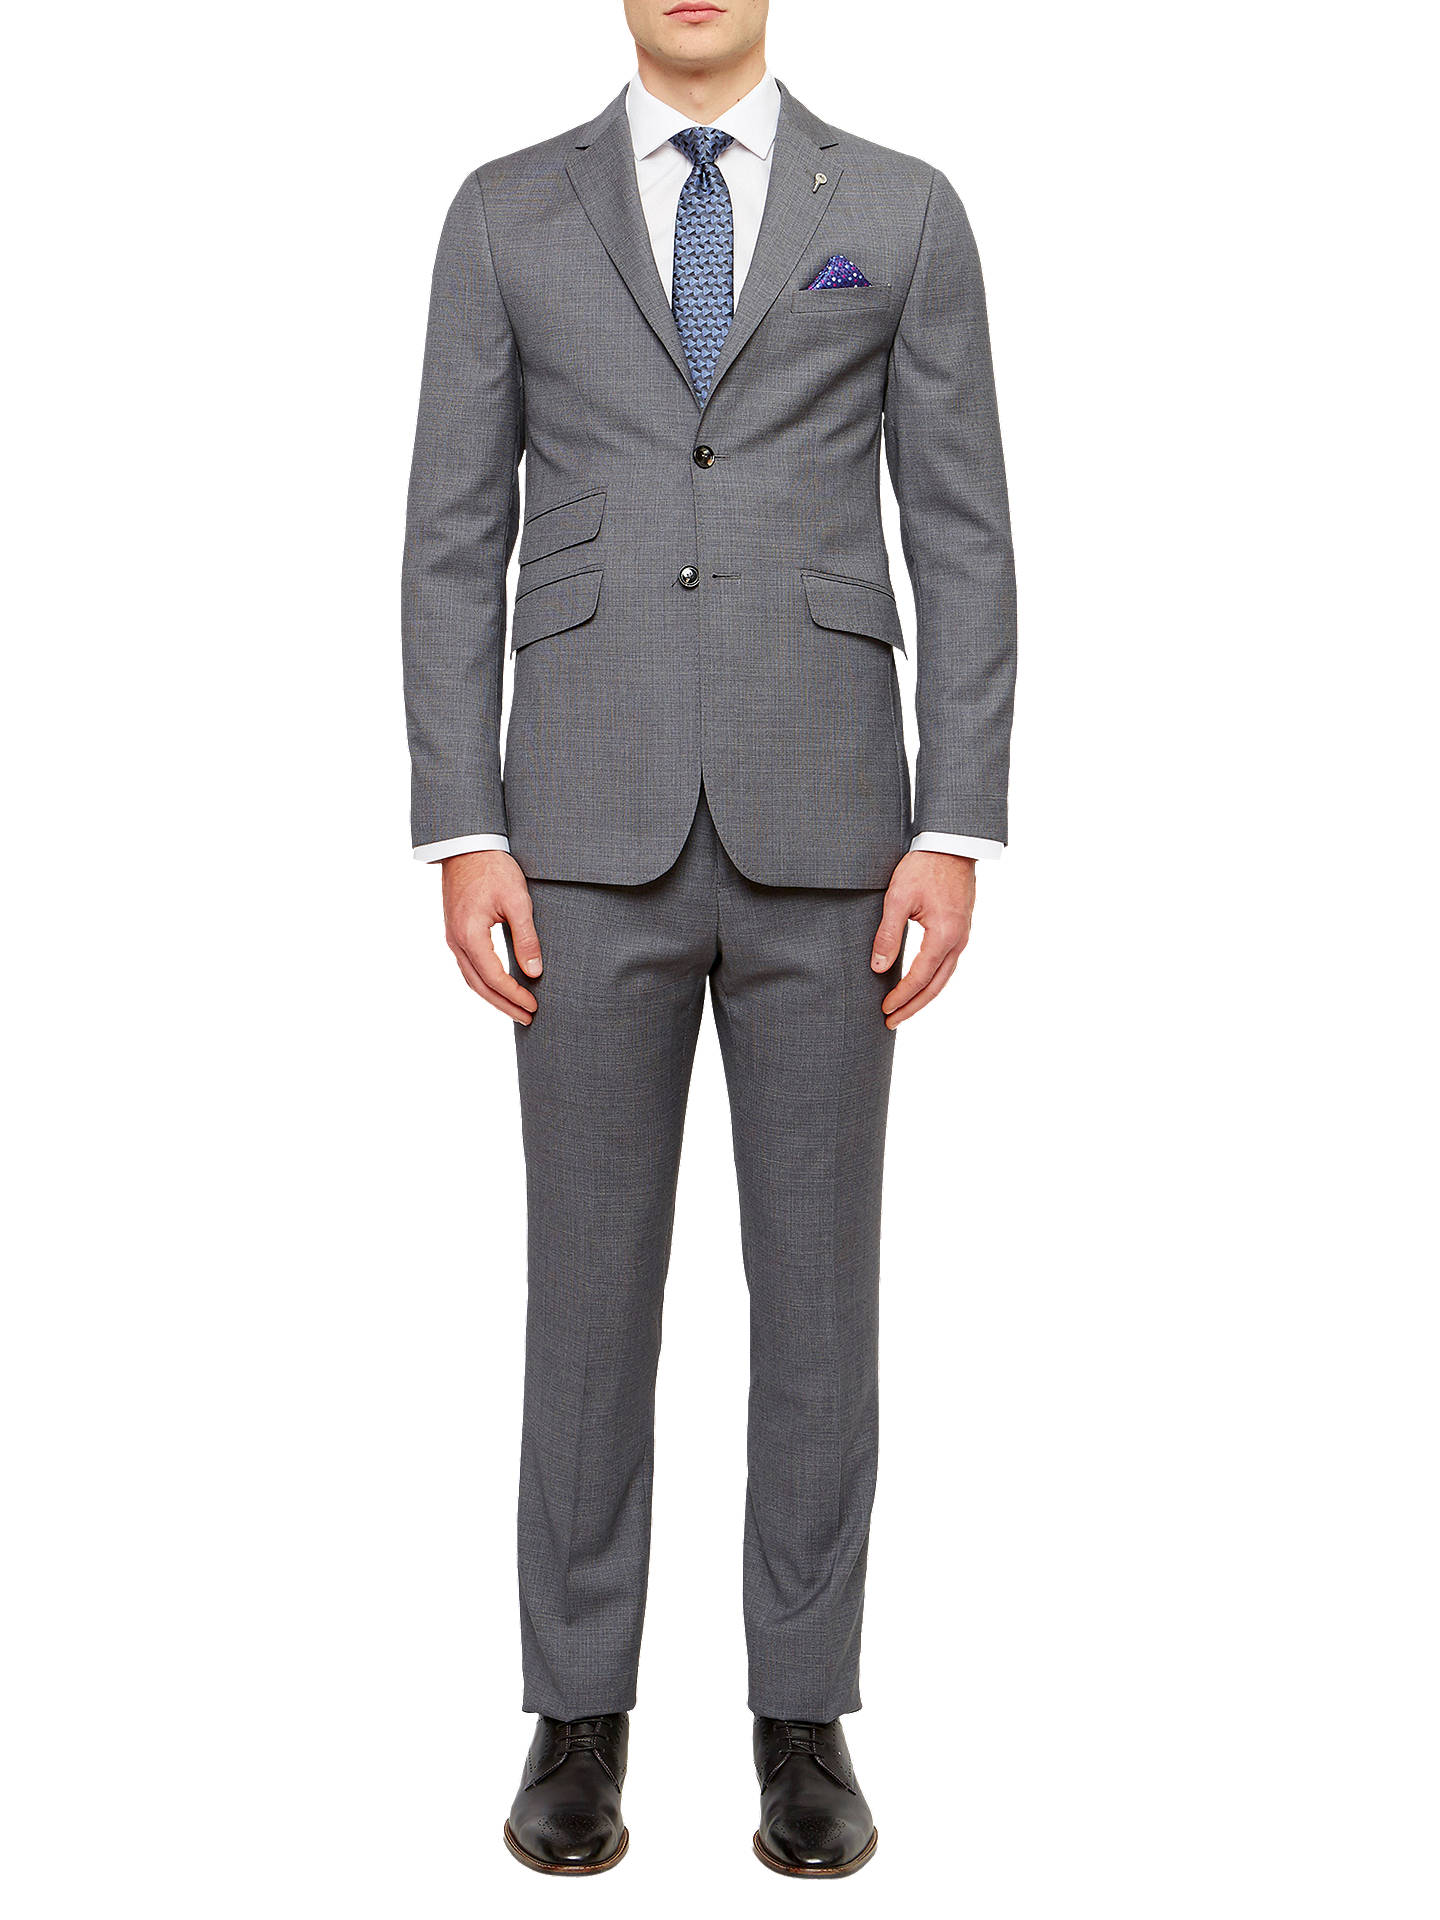 86f90c2a9cbb Buy Ted Baker Tippedj Wool Semi Plain Tailored Suit Jacket